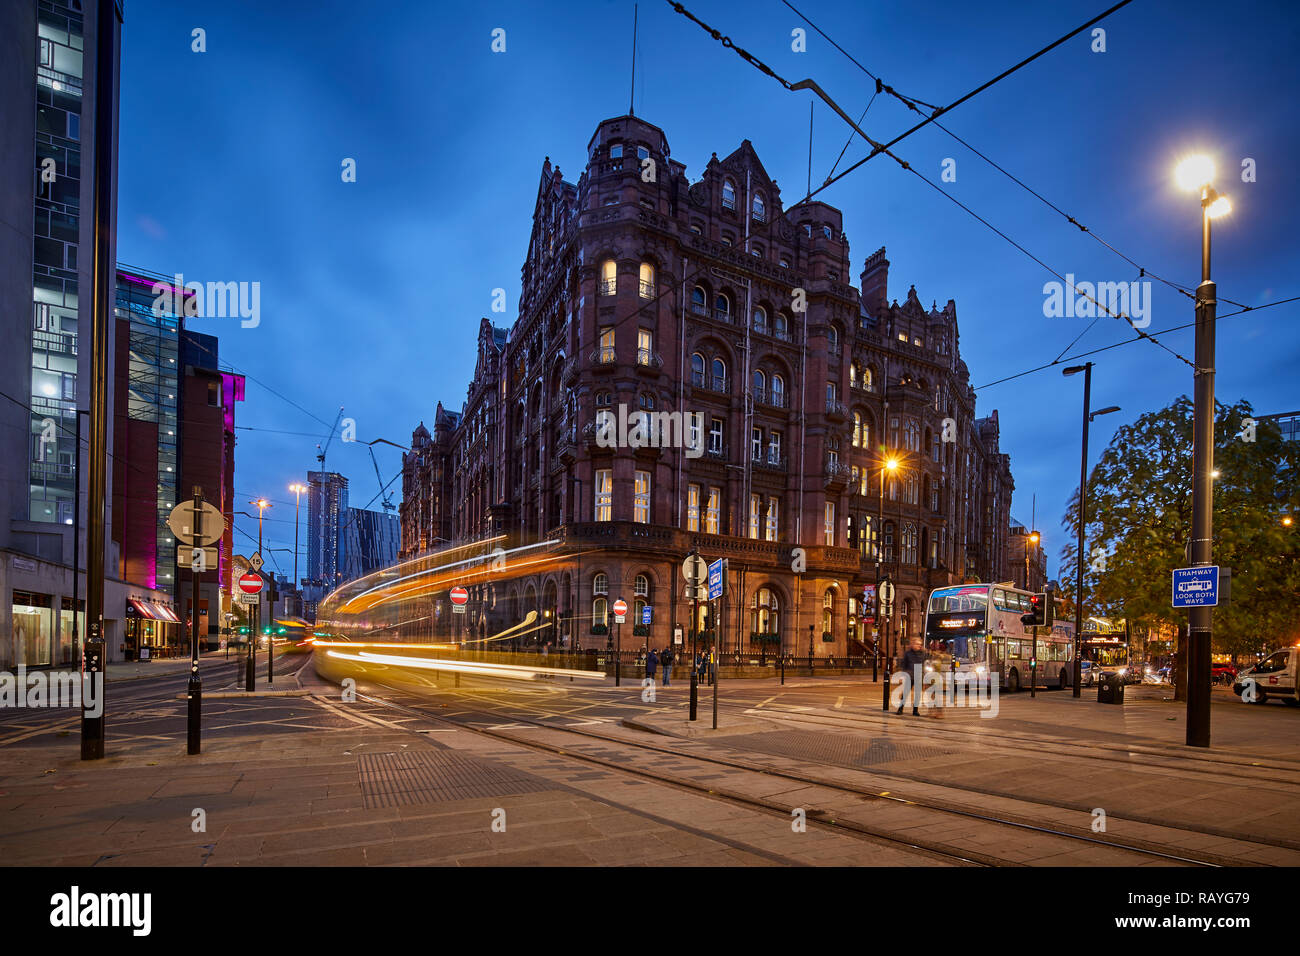 Manchester at night Manchester Midland Hotel and at Peters Square - Stock Image